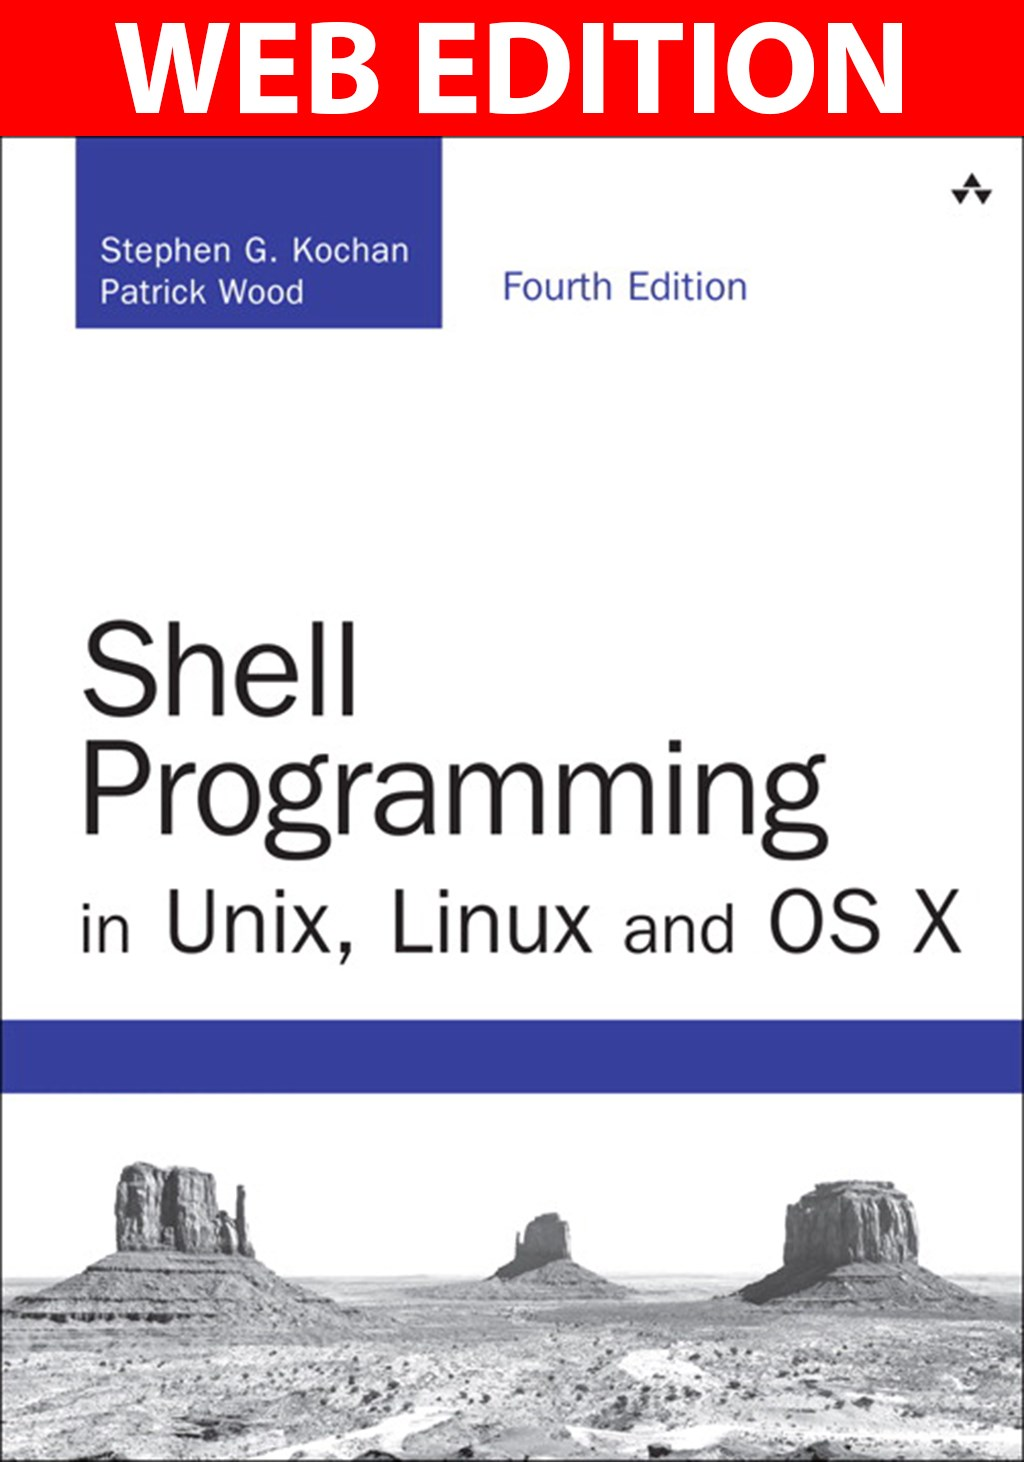 Shell Programming in Unix, Linux and OS X, Web Edition: The Fourth Edition of Unix Shell Programming, 4th Edition